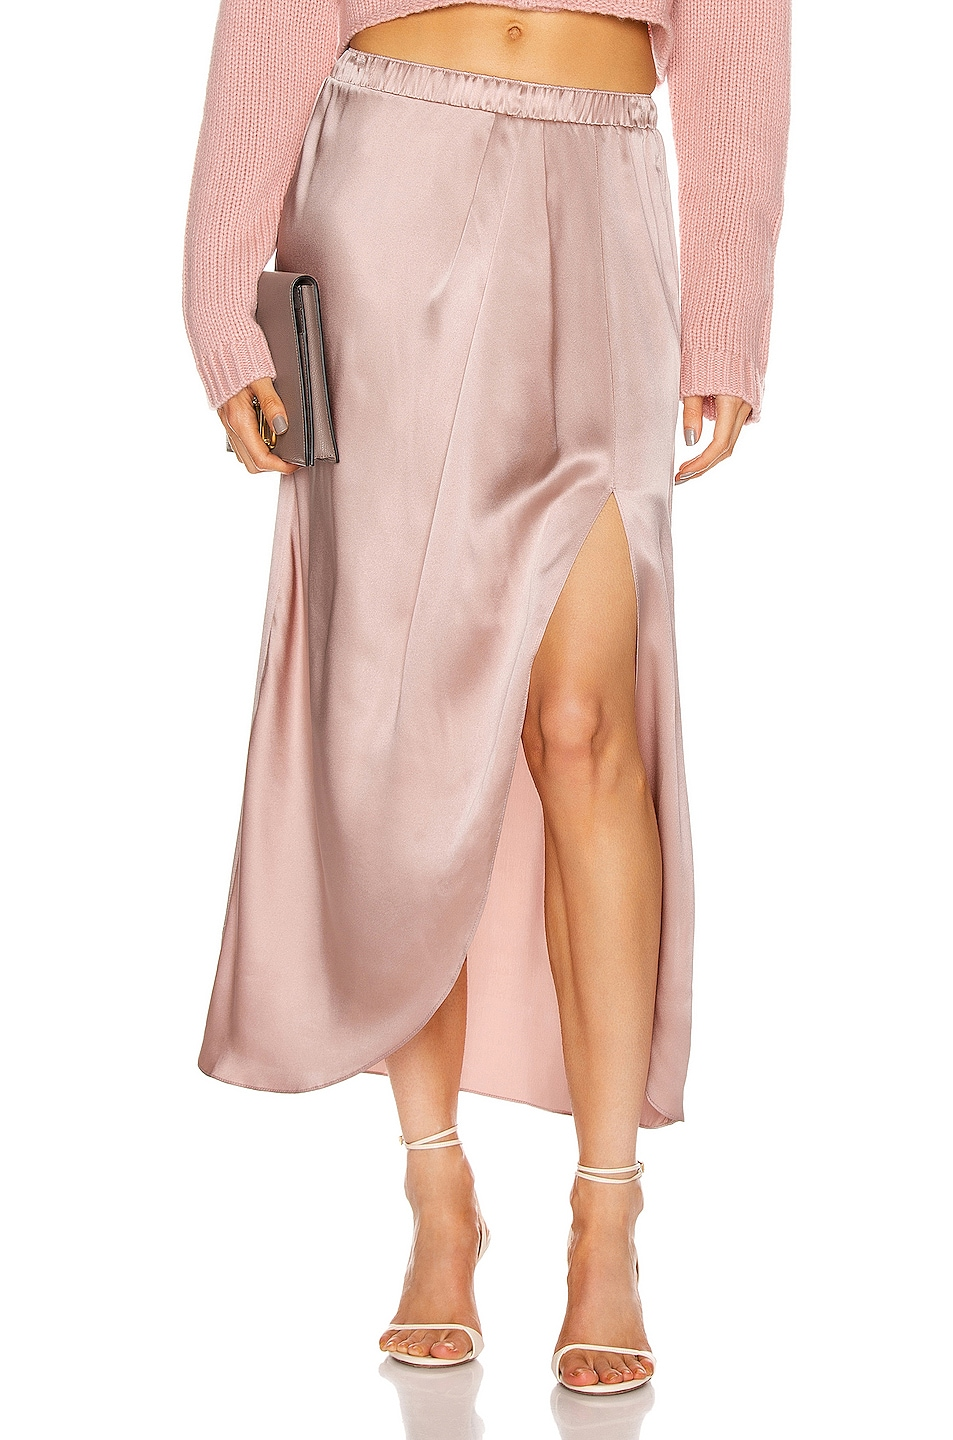 Image 1 of SABLYN Ariel Slit Skirt in Cherry Blossom